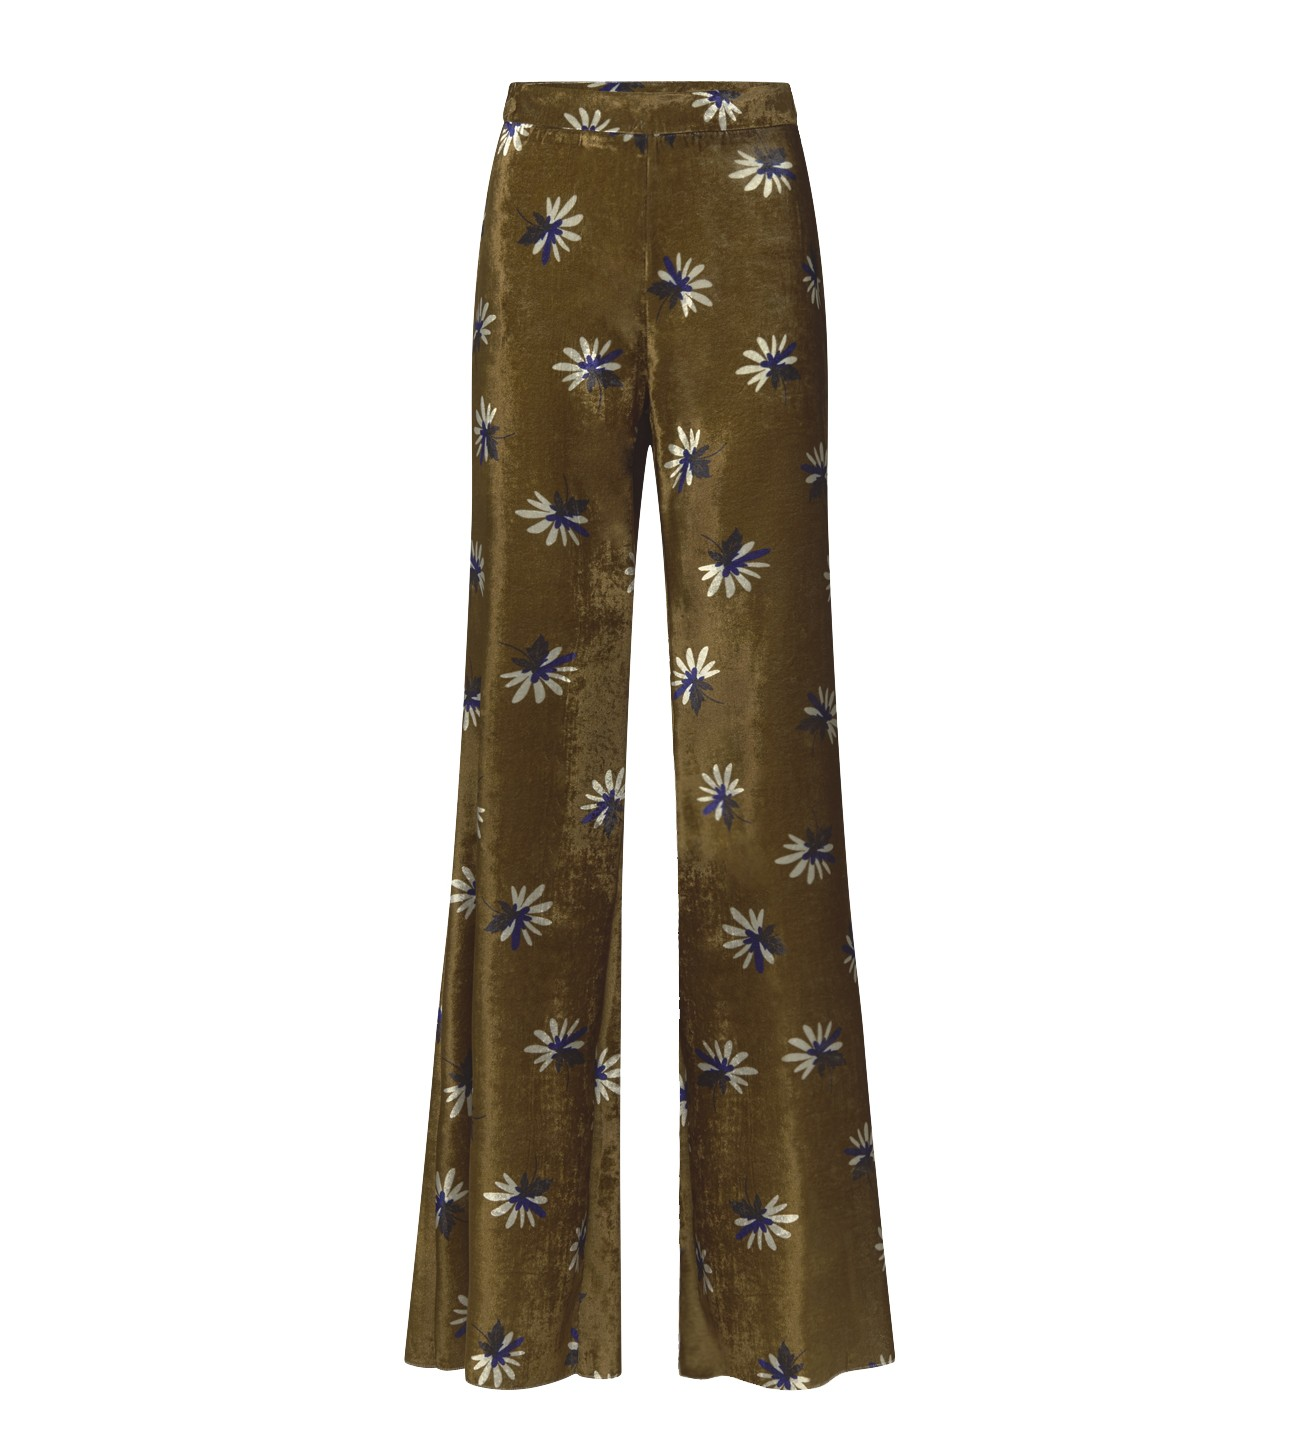 MARIONA_BELL-BOTTOMS_VELVET_TROUSERS_MARIONA_FASHION_CLOTHING_WOMAN_SHOP_ONLINE_6043H